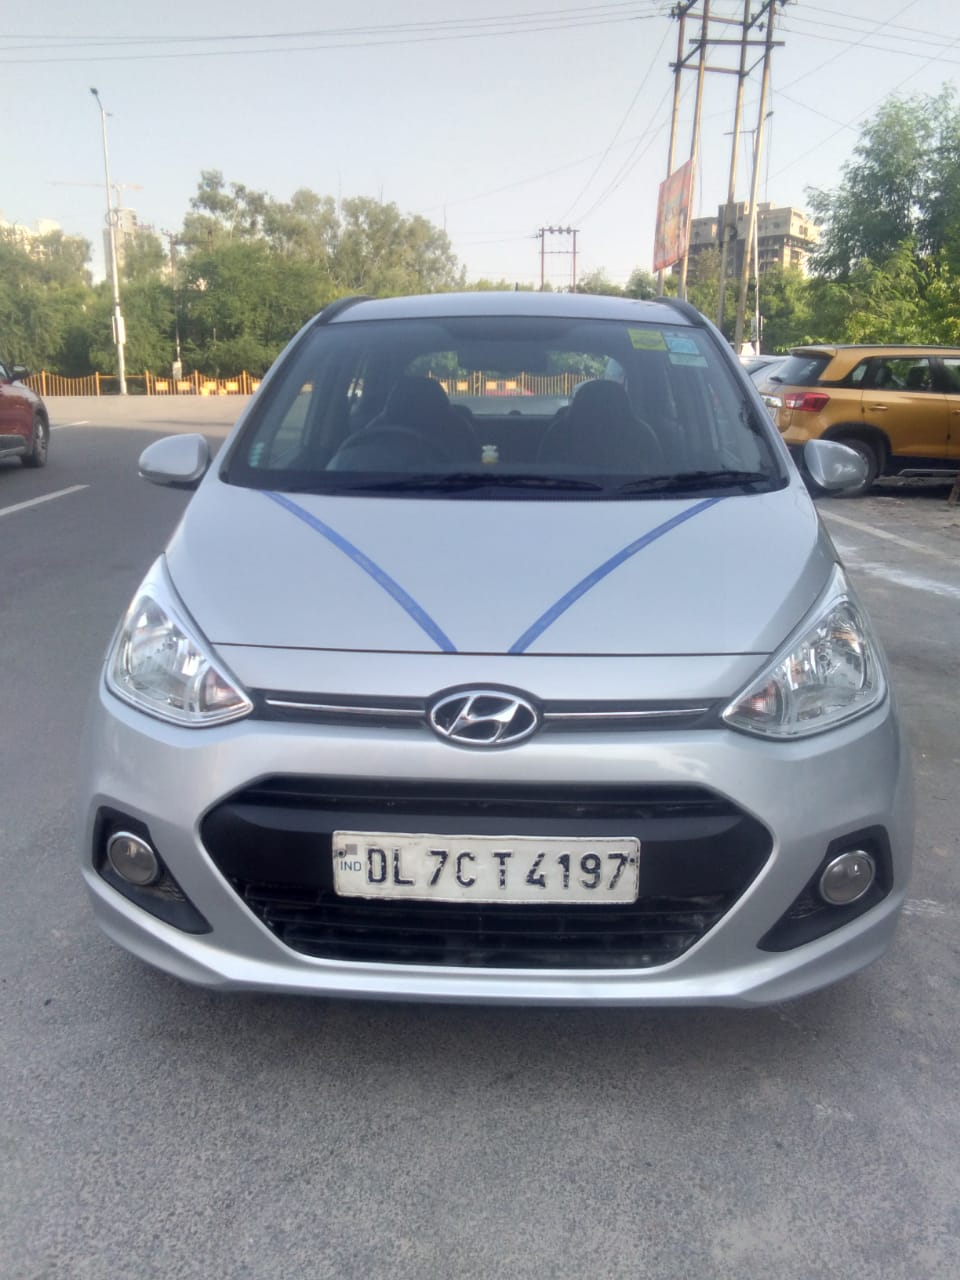 2014 Used Hyundai Grand I10 SPORTZ 1.1 CRDI